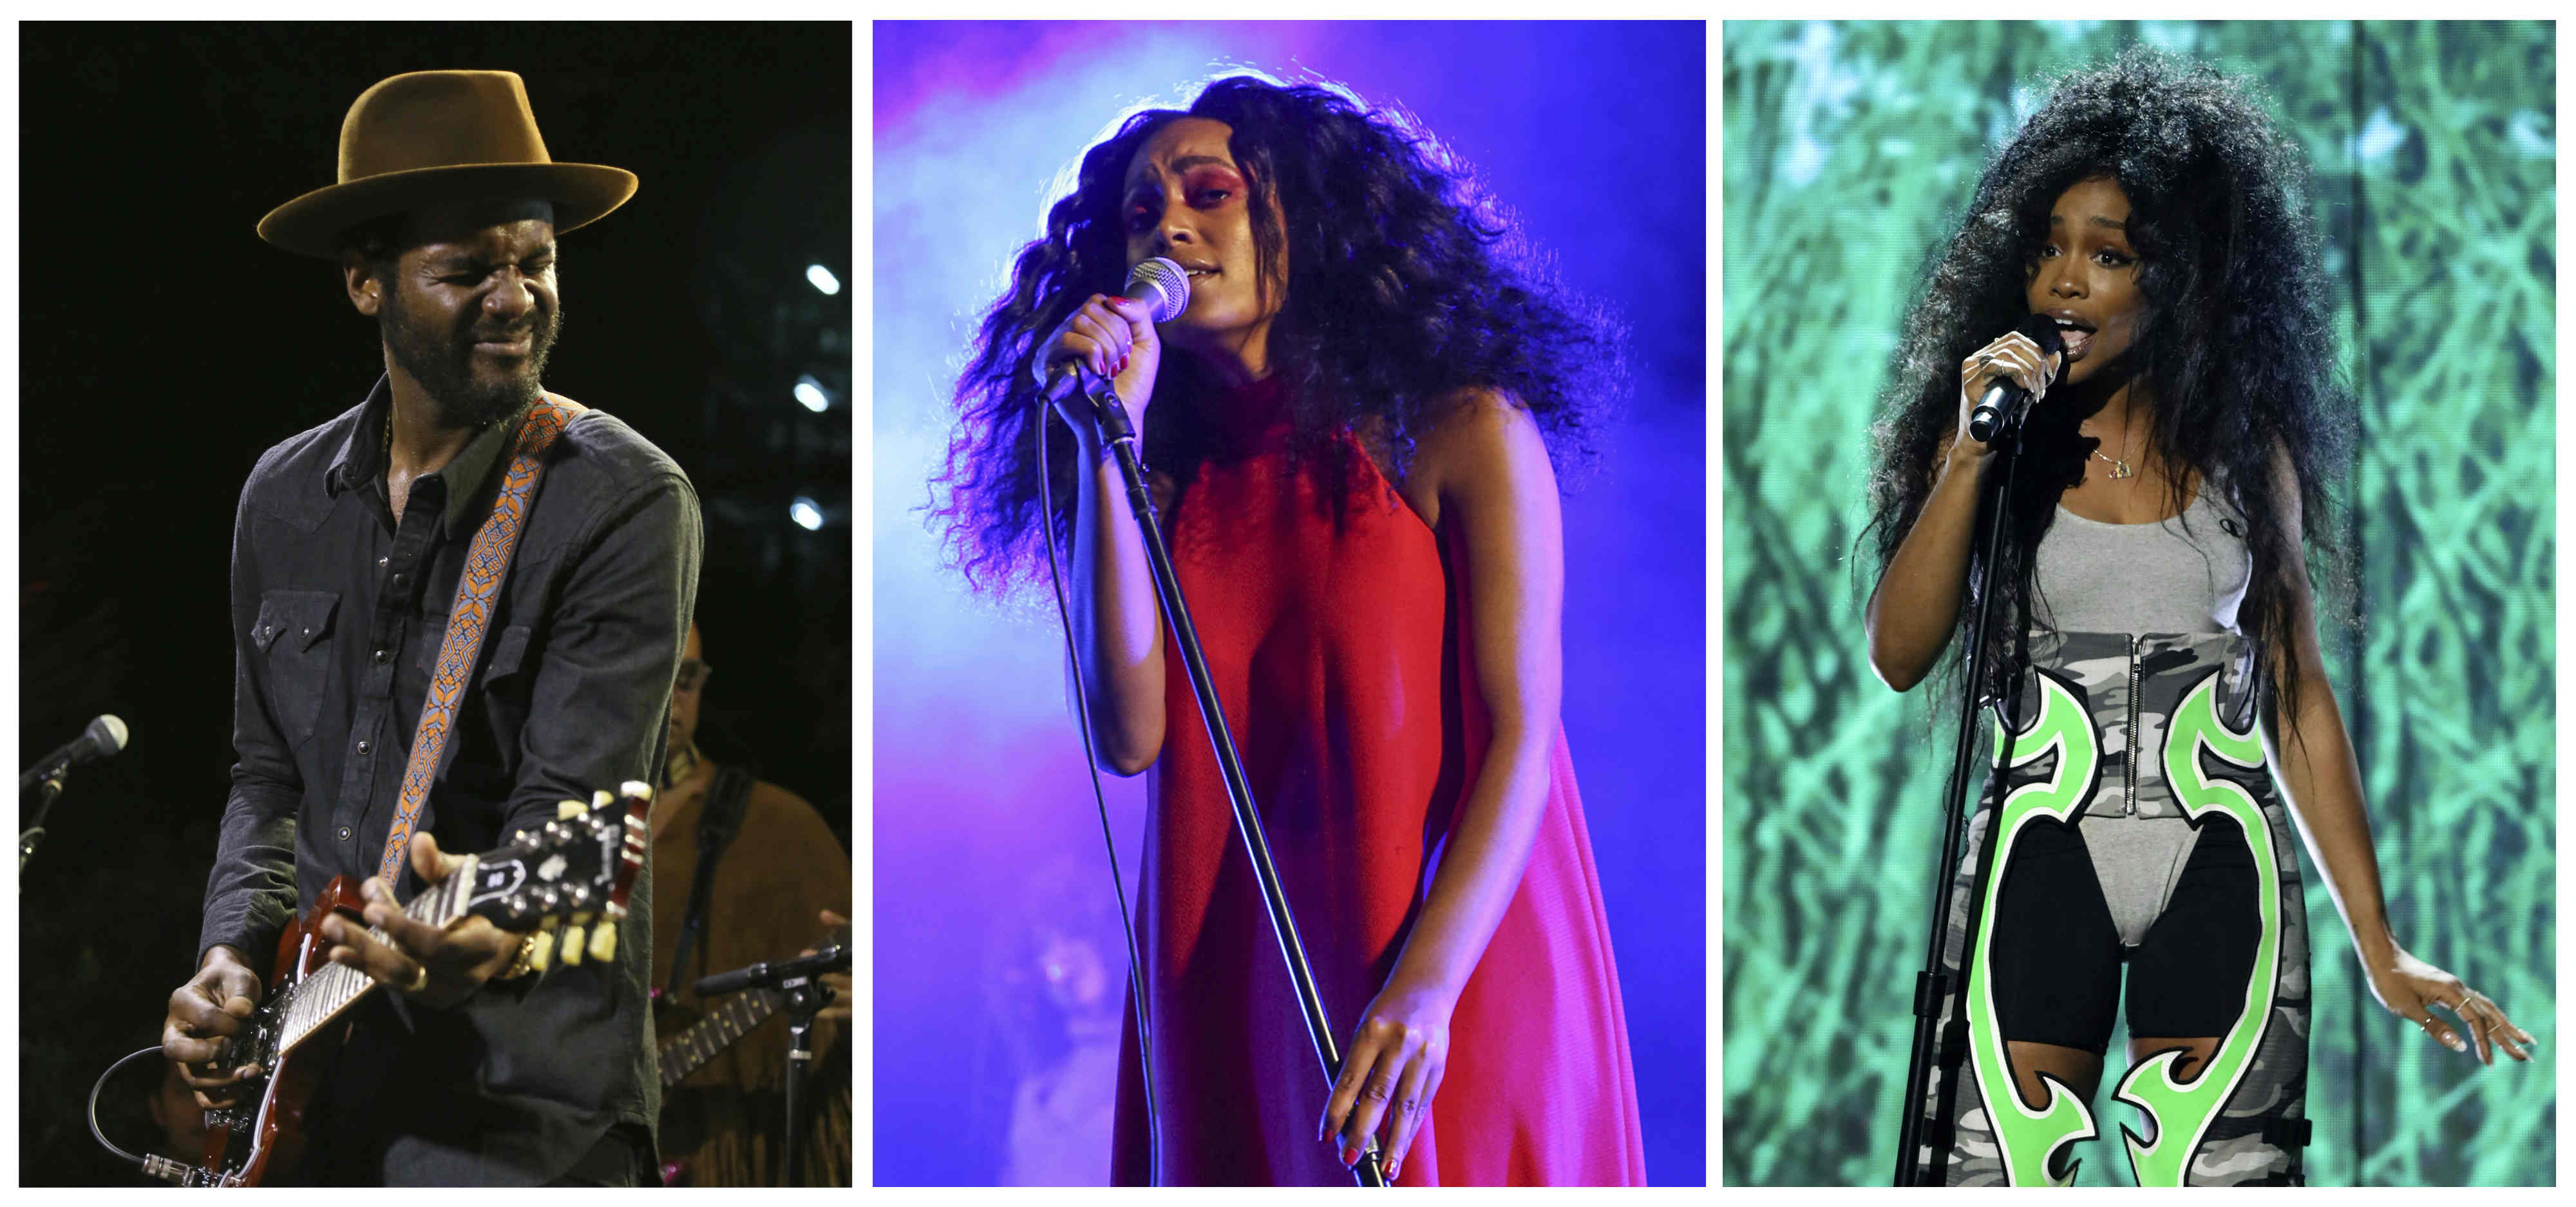 This combination photo shows performers, from left, Gary Clark, Jr. , Solange Knowles, and SZA.